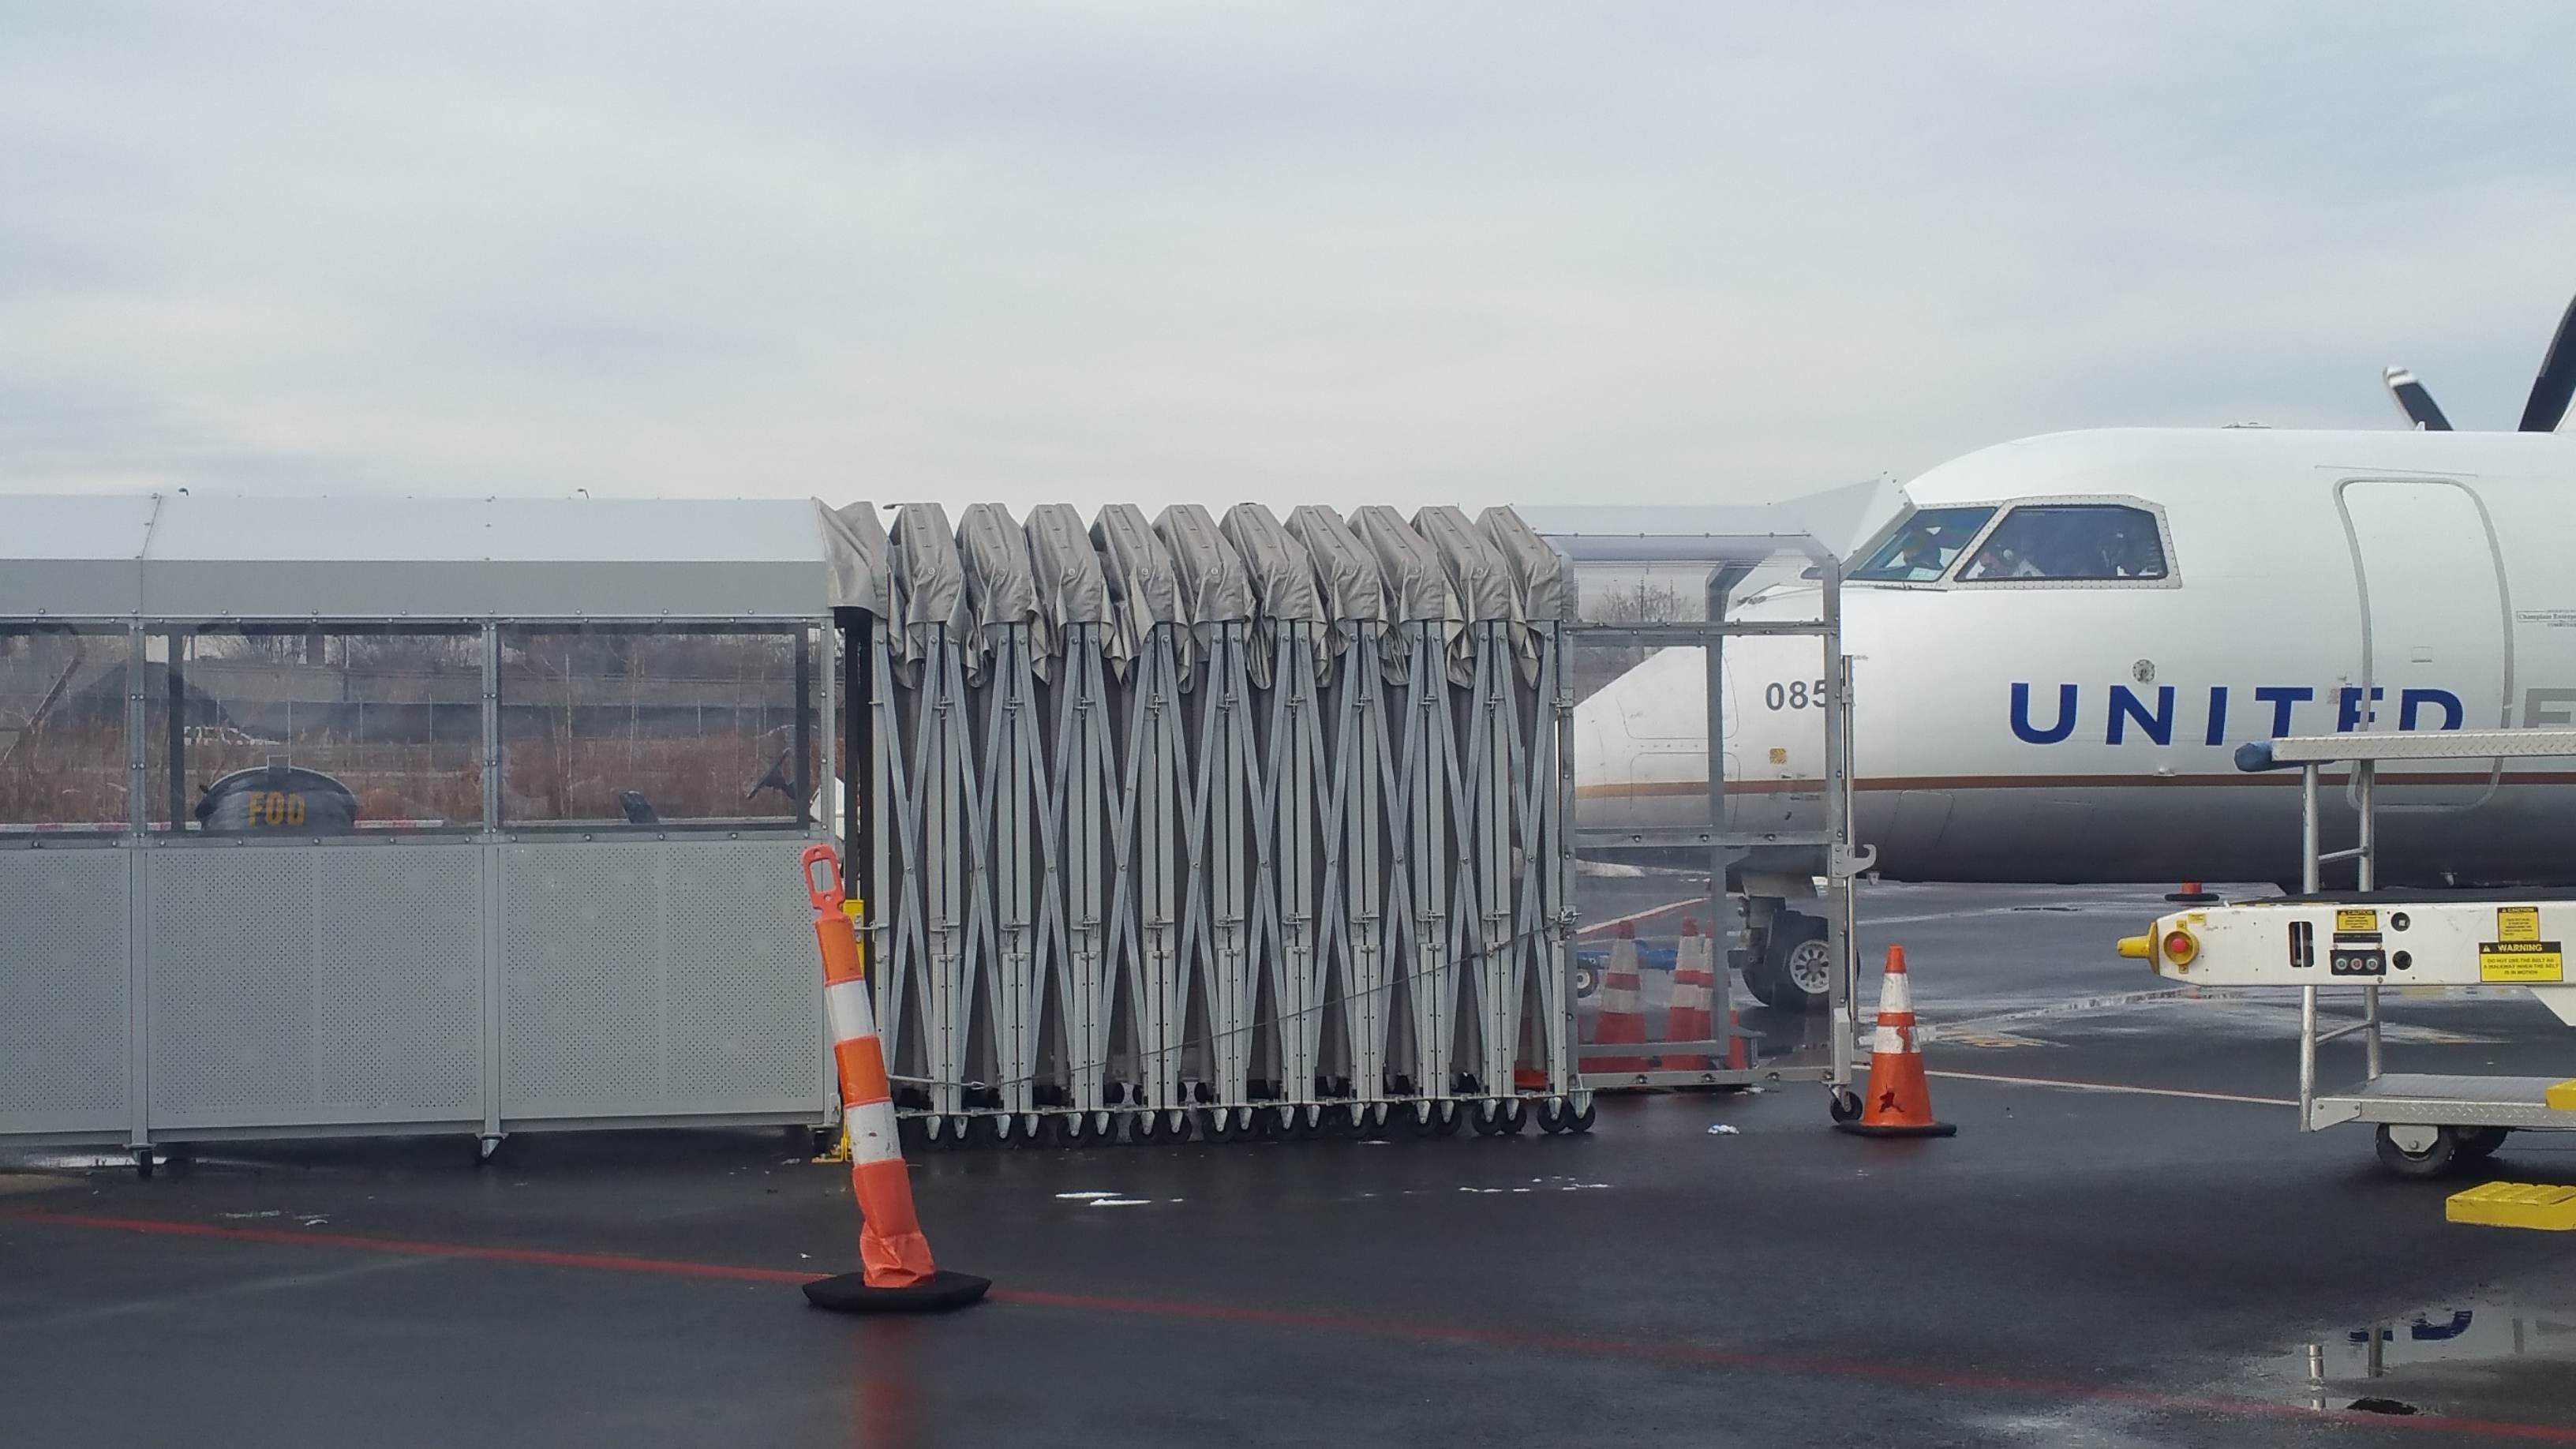 ground boarding equipment, east island aviation, ewr, newark airport, united airlines